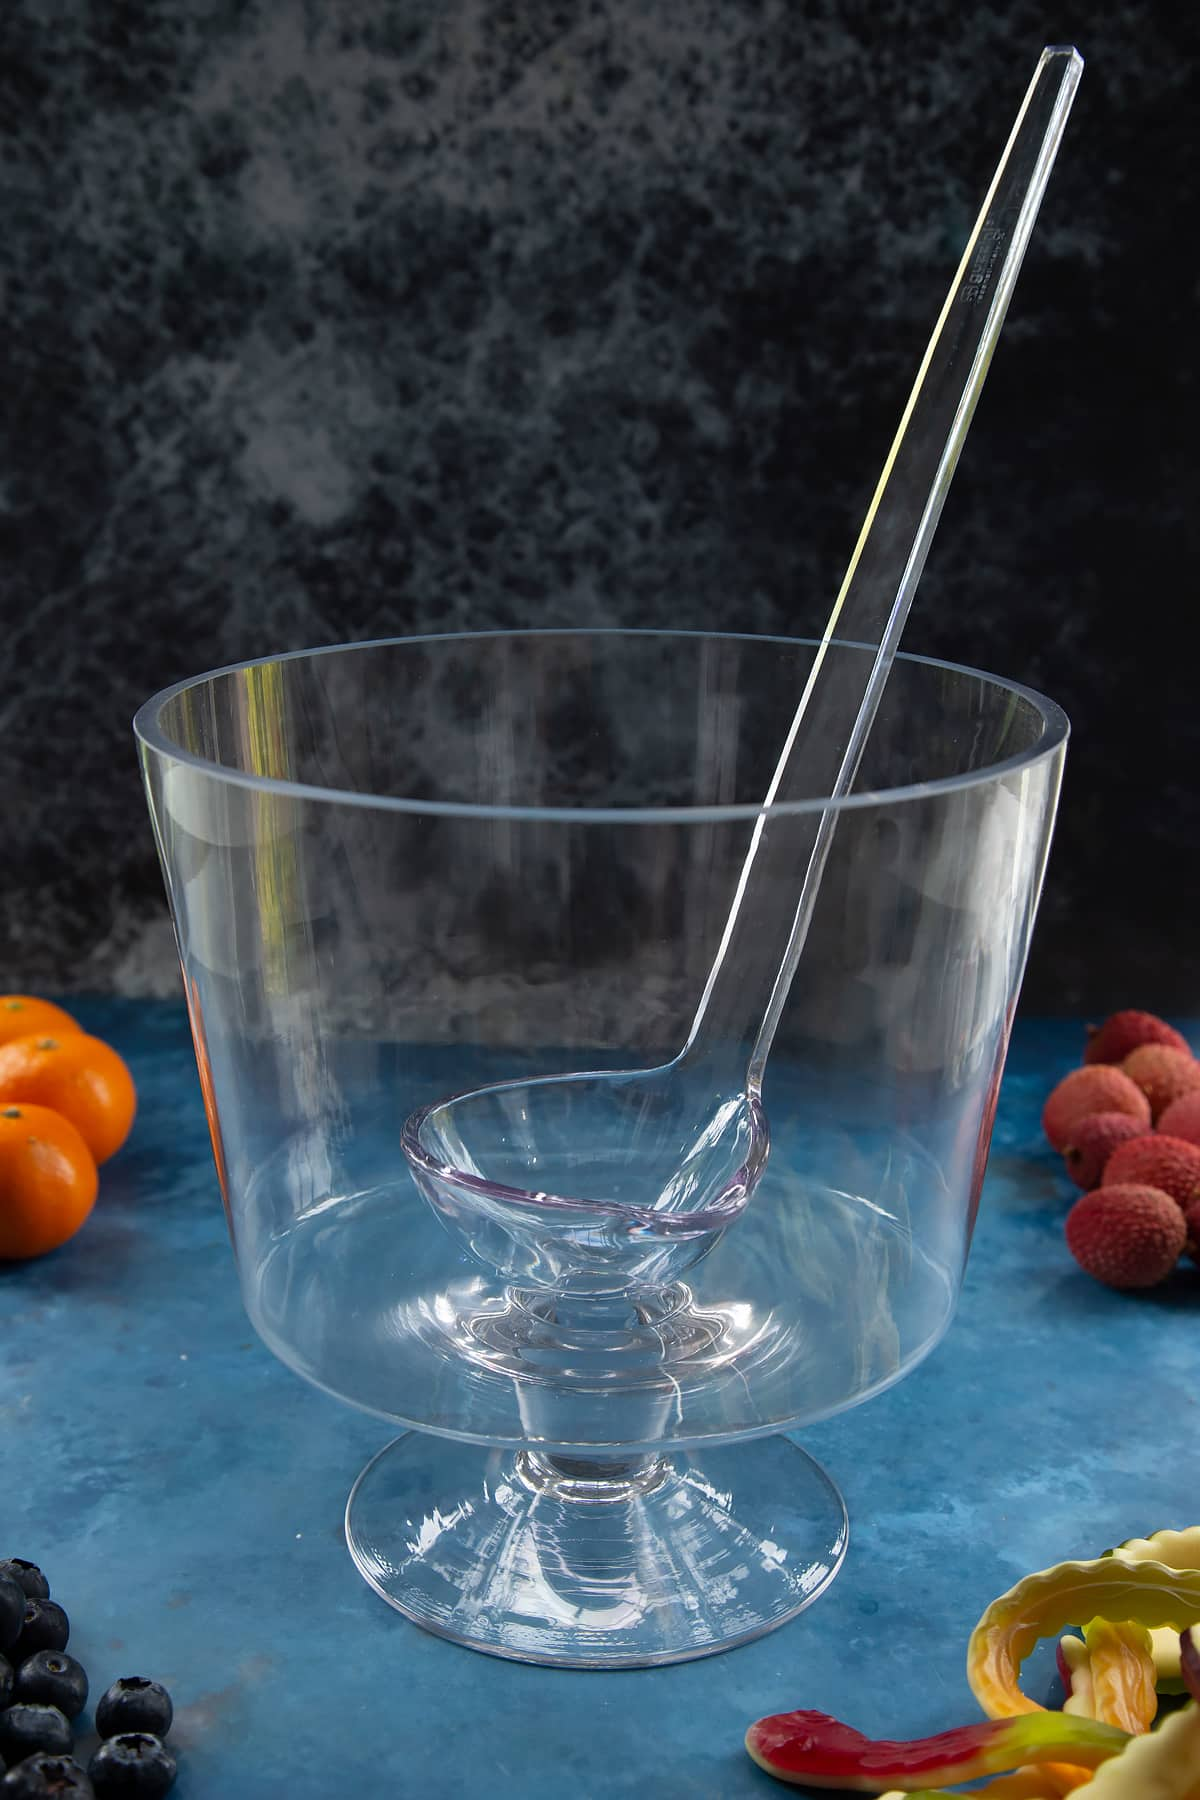 A glass punch bowl with ladle. Ingredients to make Halloween punch surround the bowl.